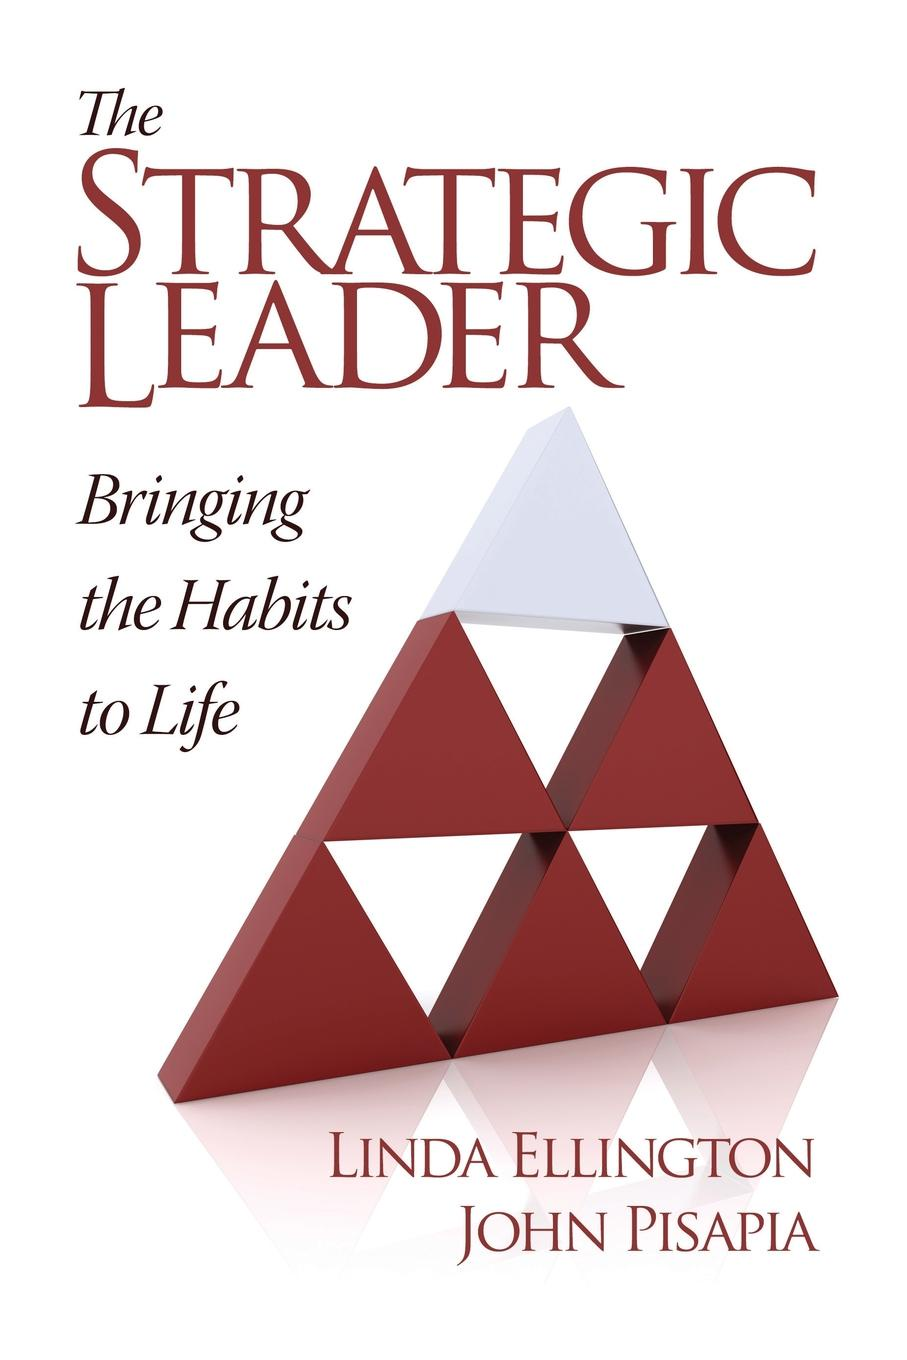 Linda Ellington, John Pisapia The Strategic Leader. Bringing the Habits to Life benjamin bonetti how to change your life who am i and what should i do with my life isbn 9780857084613